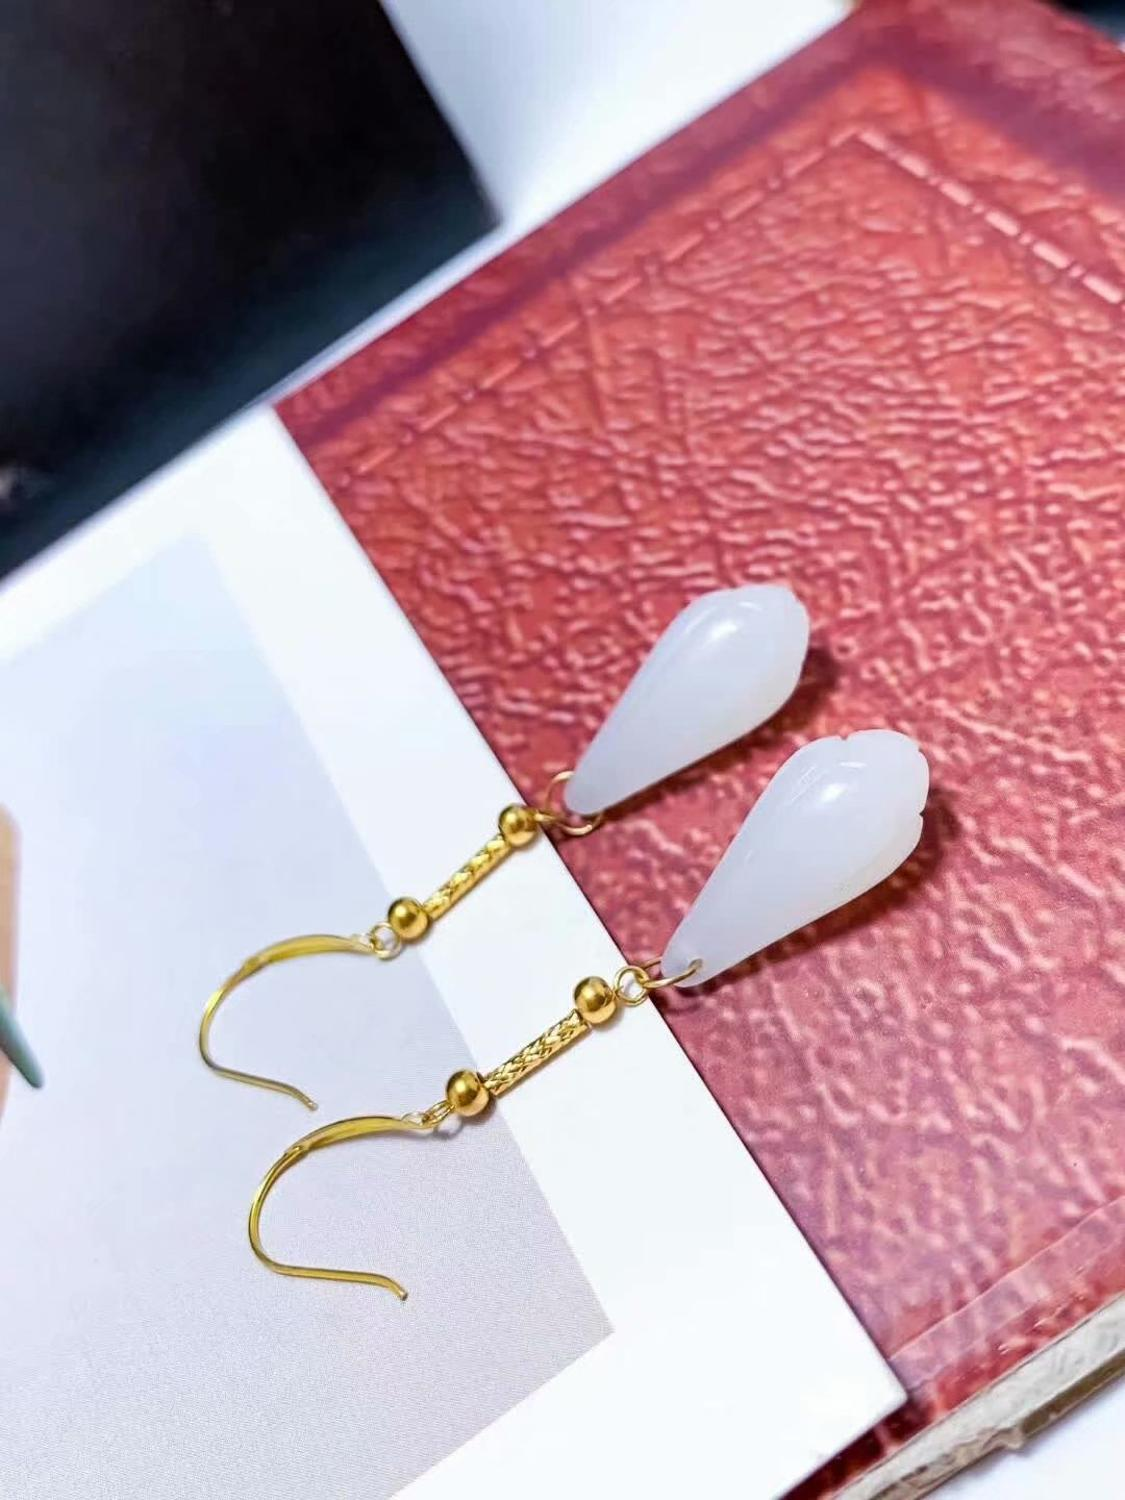 SHILOVEM 18k yellow gold Natural white Jasper drop earrings classic fine Jewelry women wedding gift new 8 18mm yz0818920hby in Earrings from Jewelry Accessories